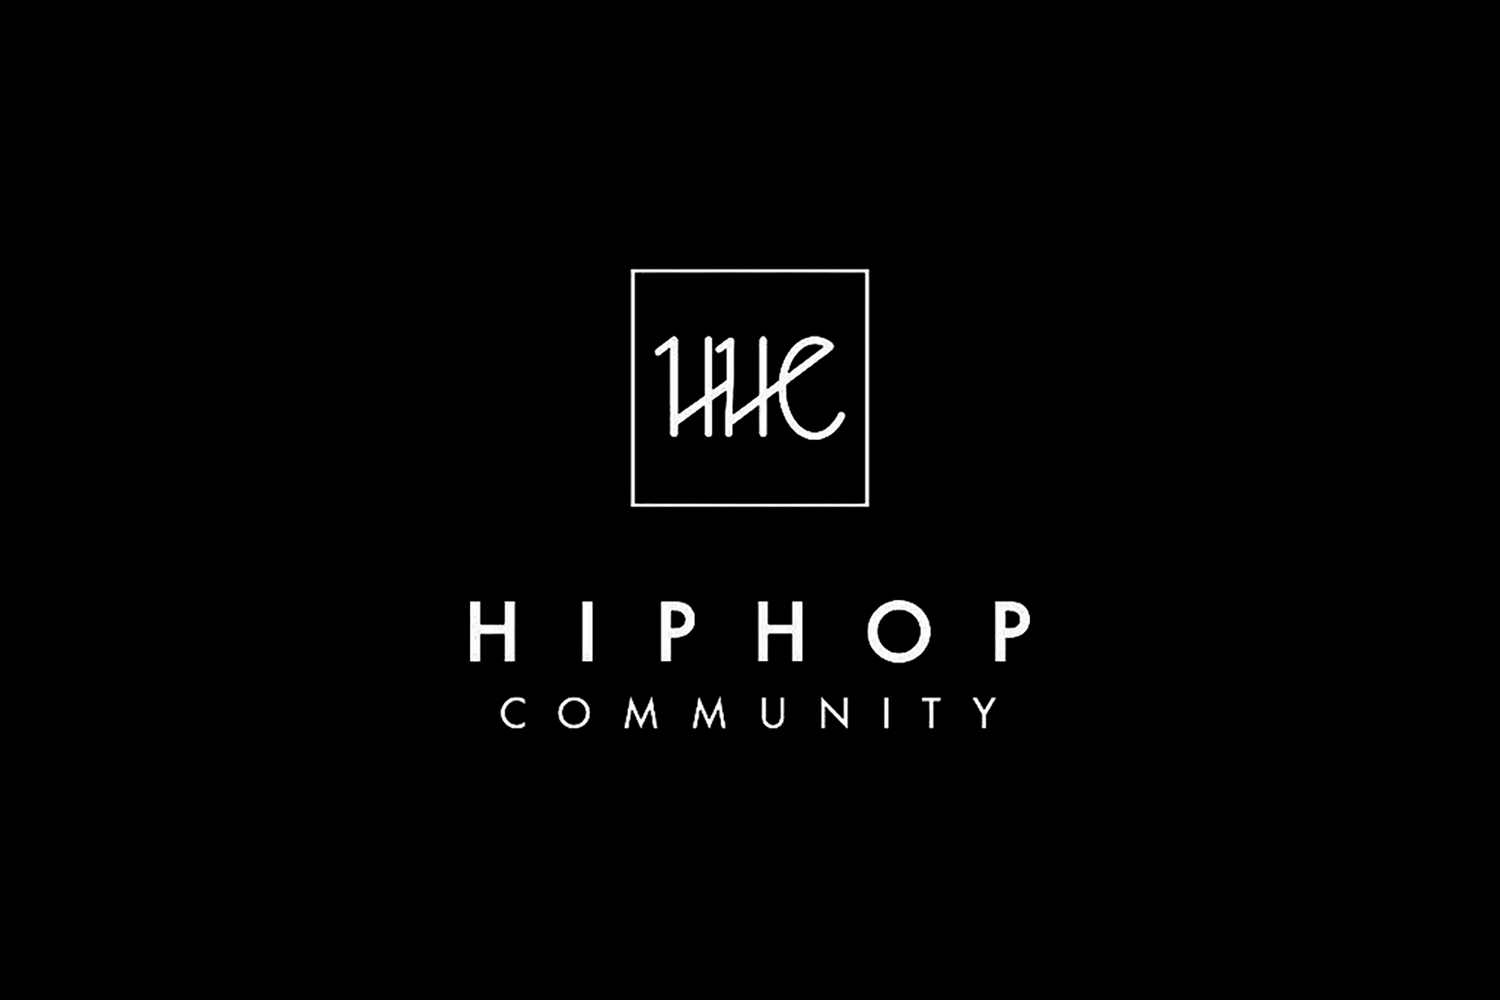 Hip Hop Community